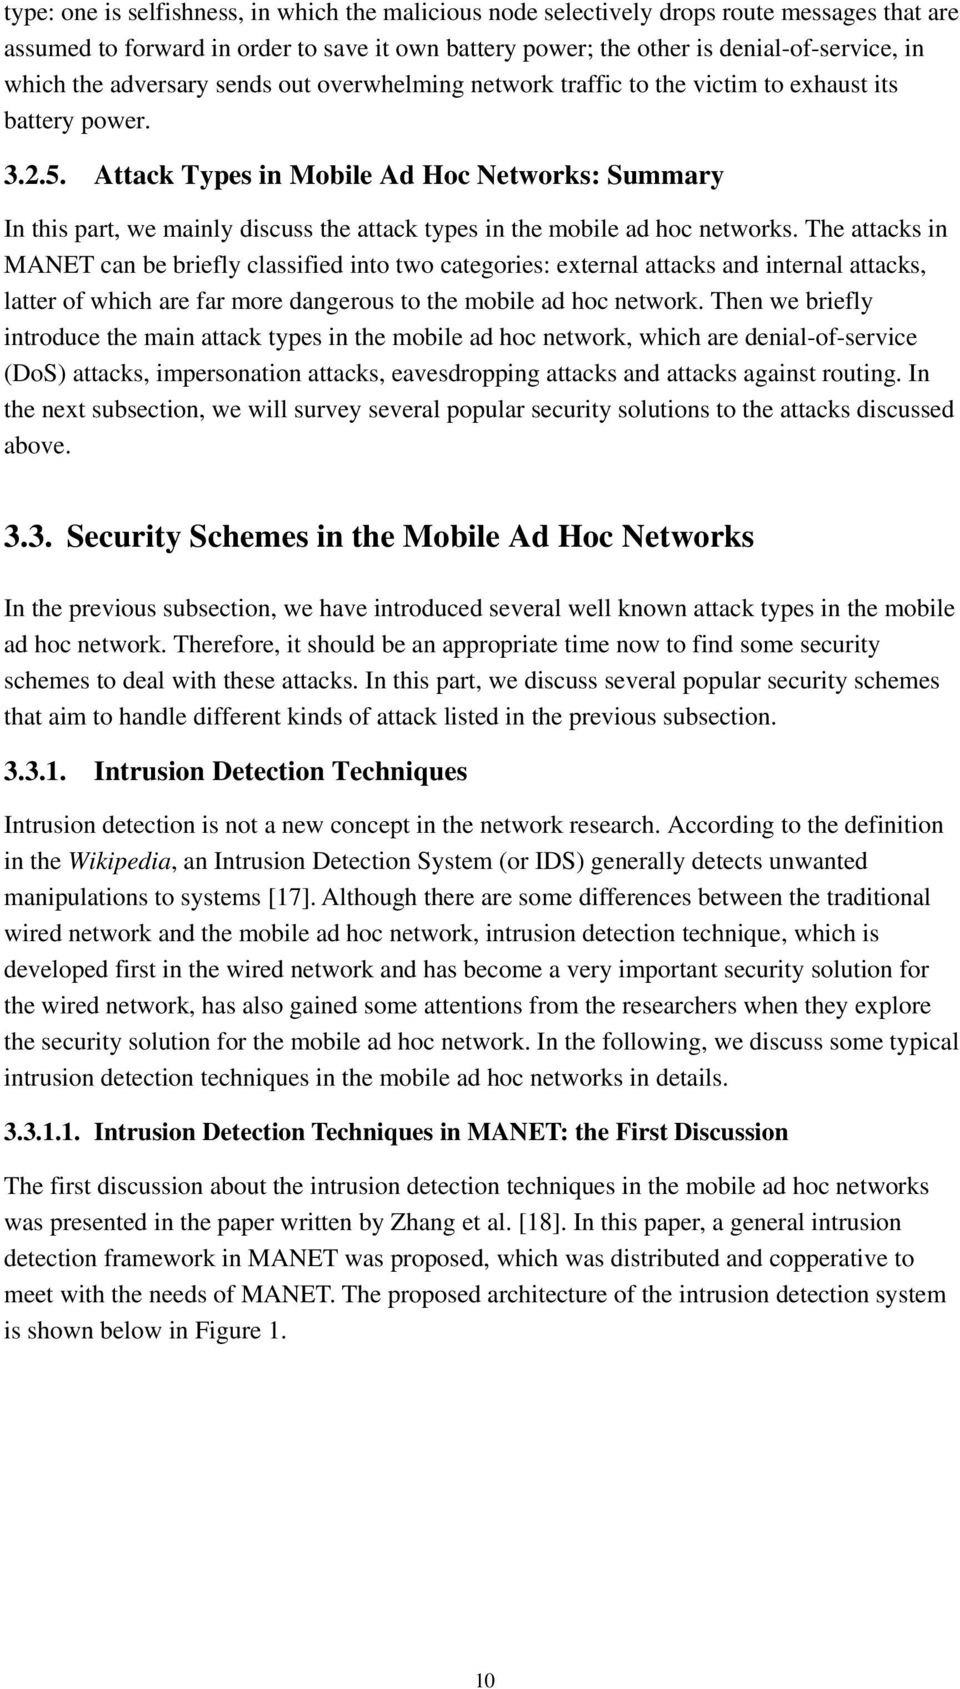 Attack Types in Mobile Ad Hoc Networks: Summary In this part, we mainly discuss the attack types in the mobile ad hoc networks.